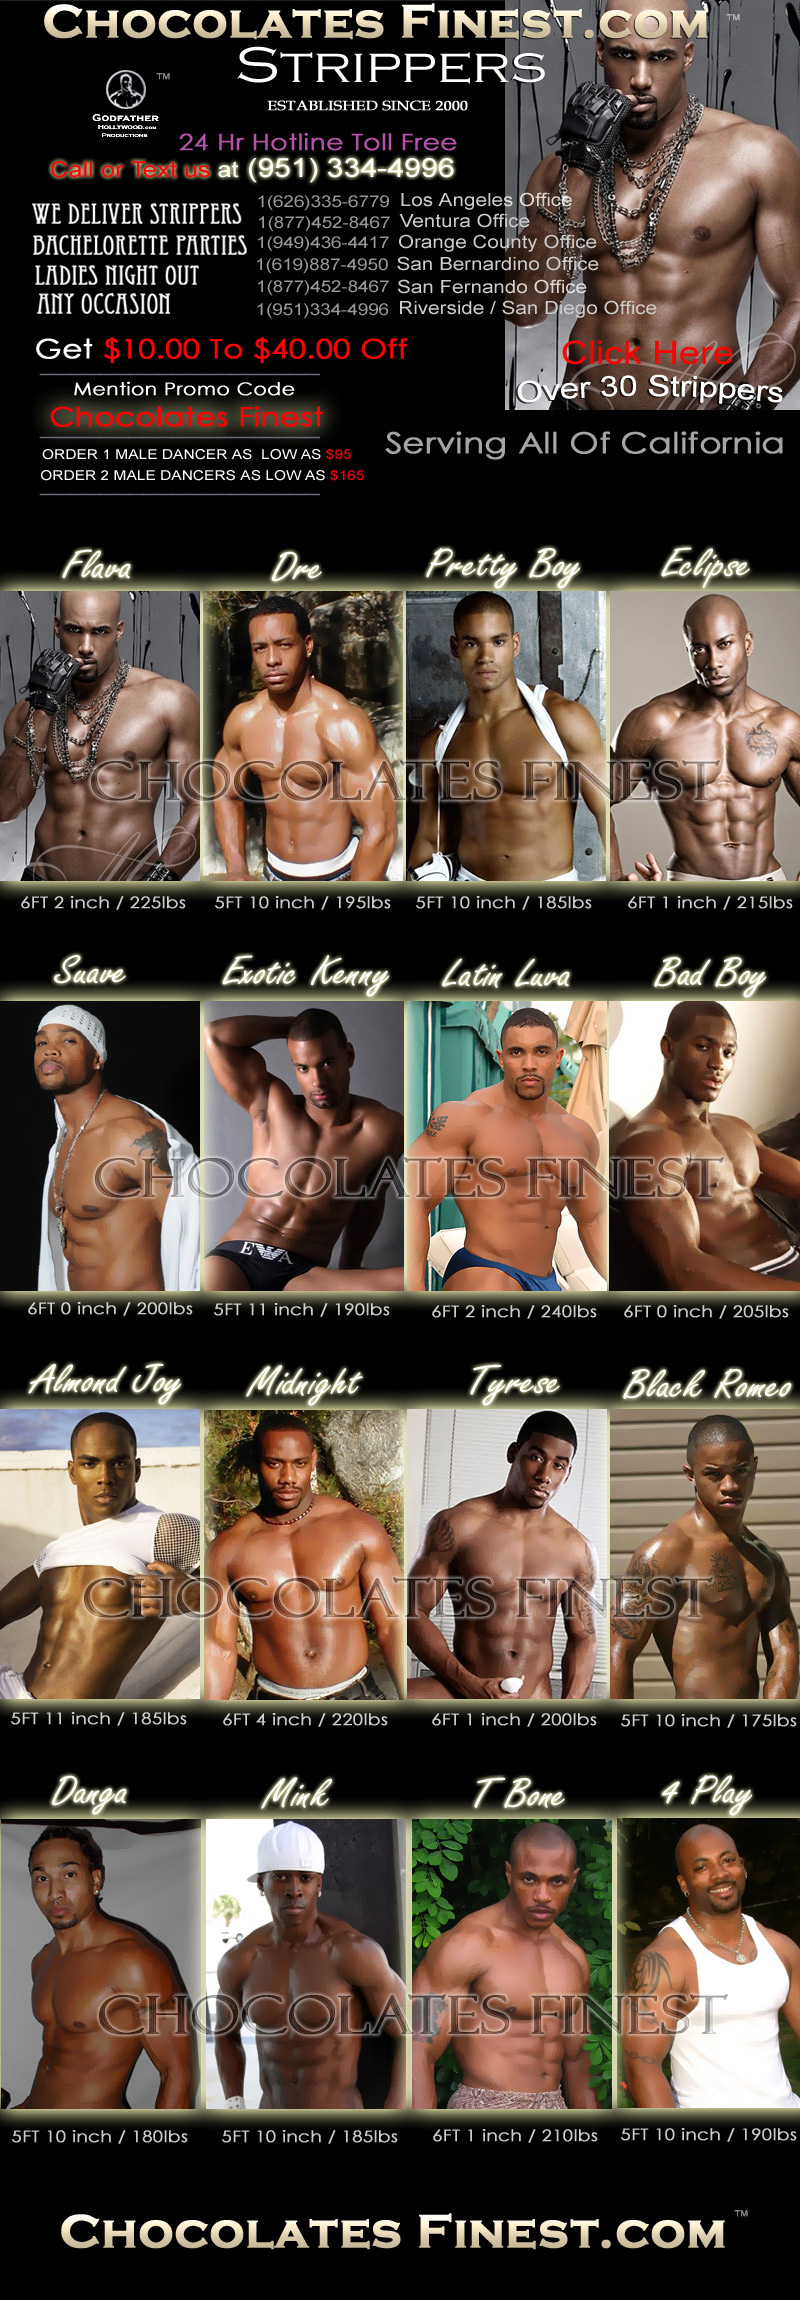 Print Black Male Strippers Los Angeles